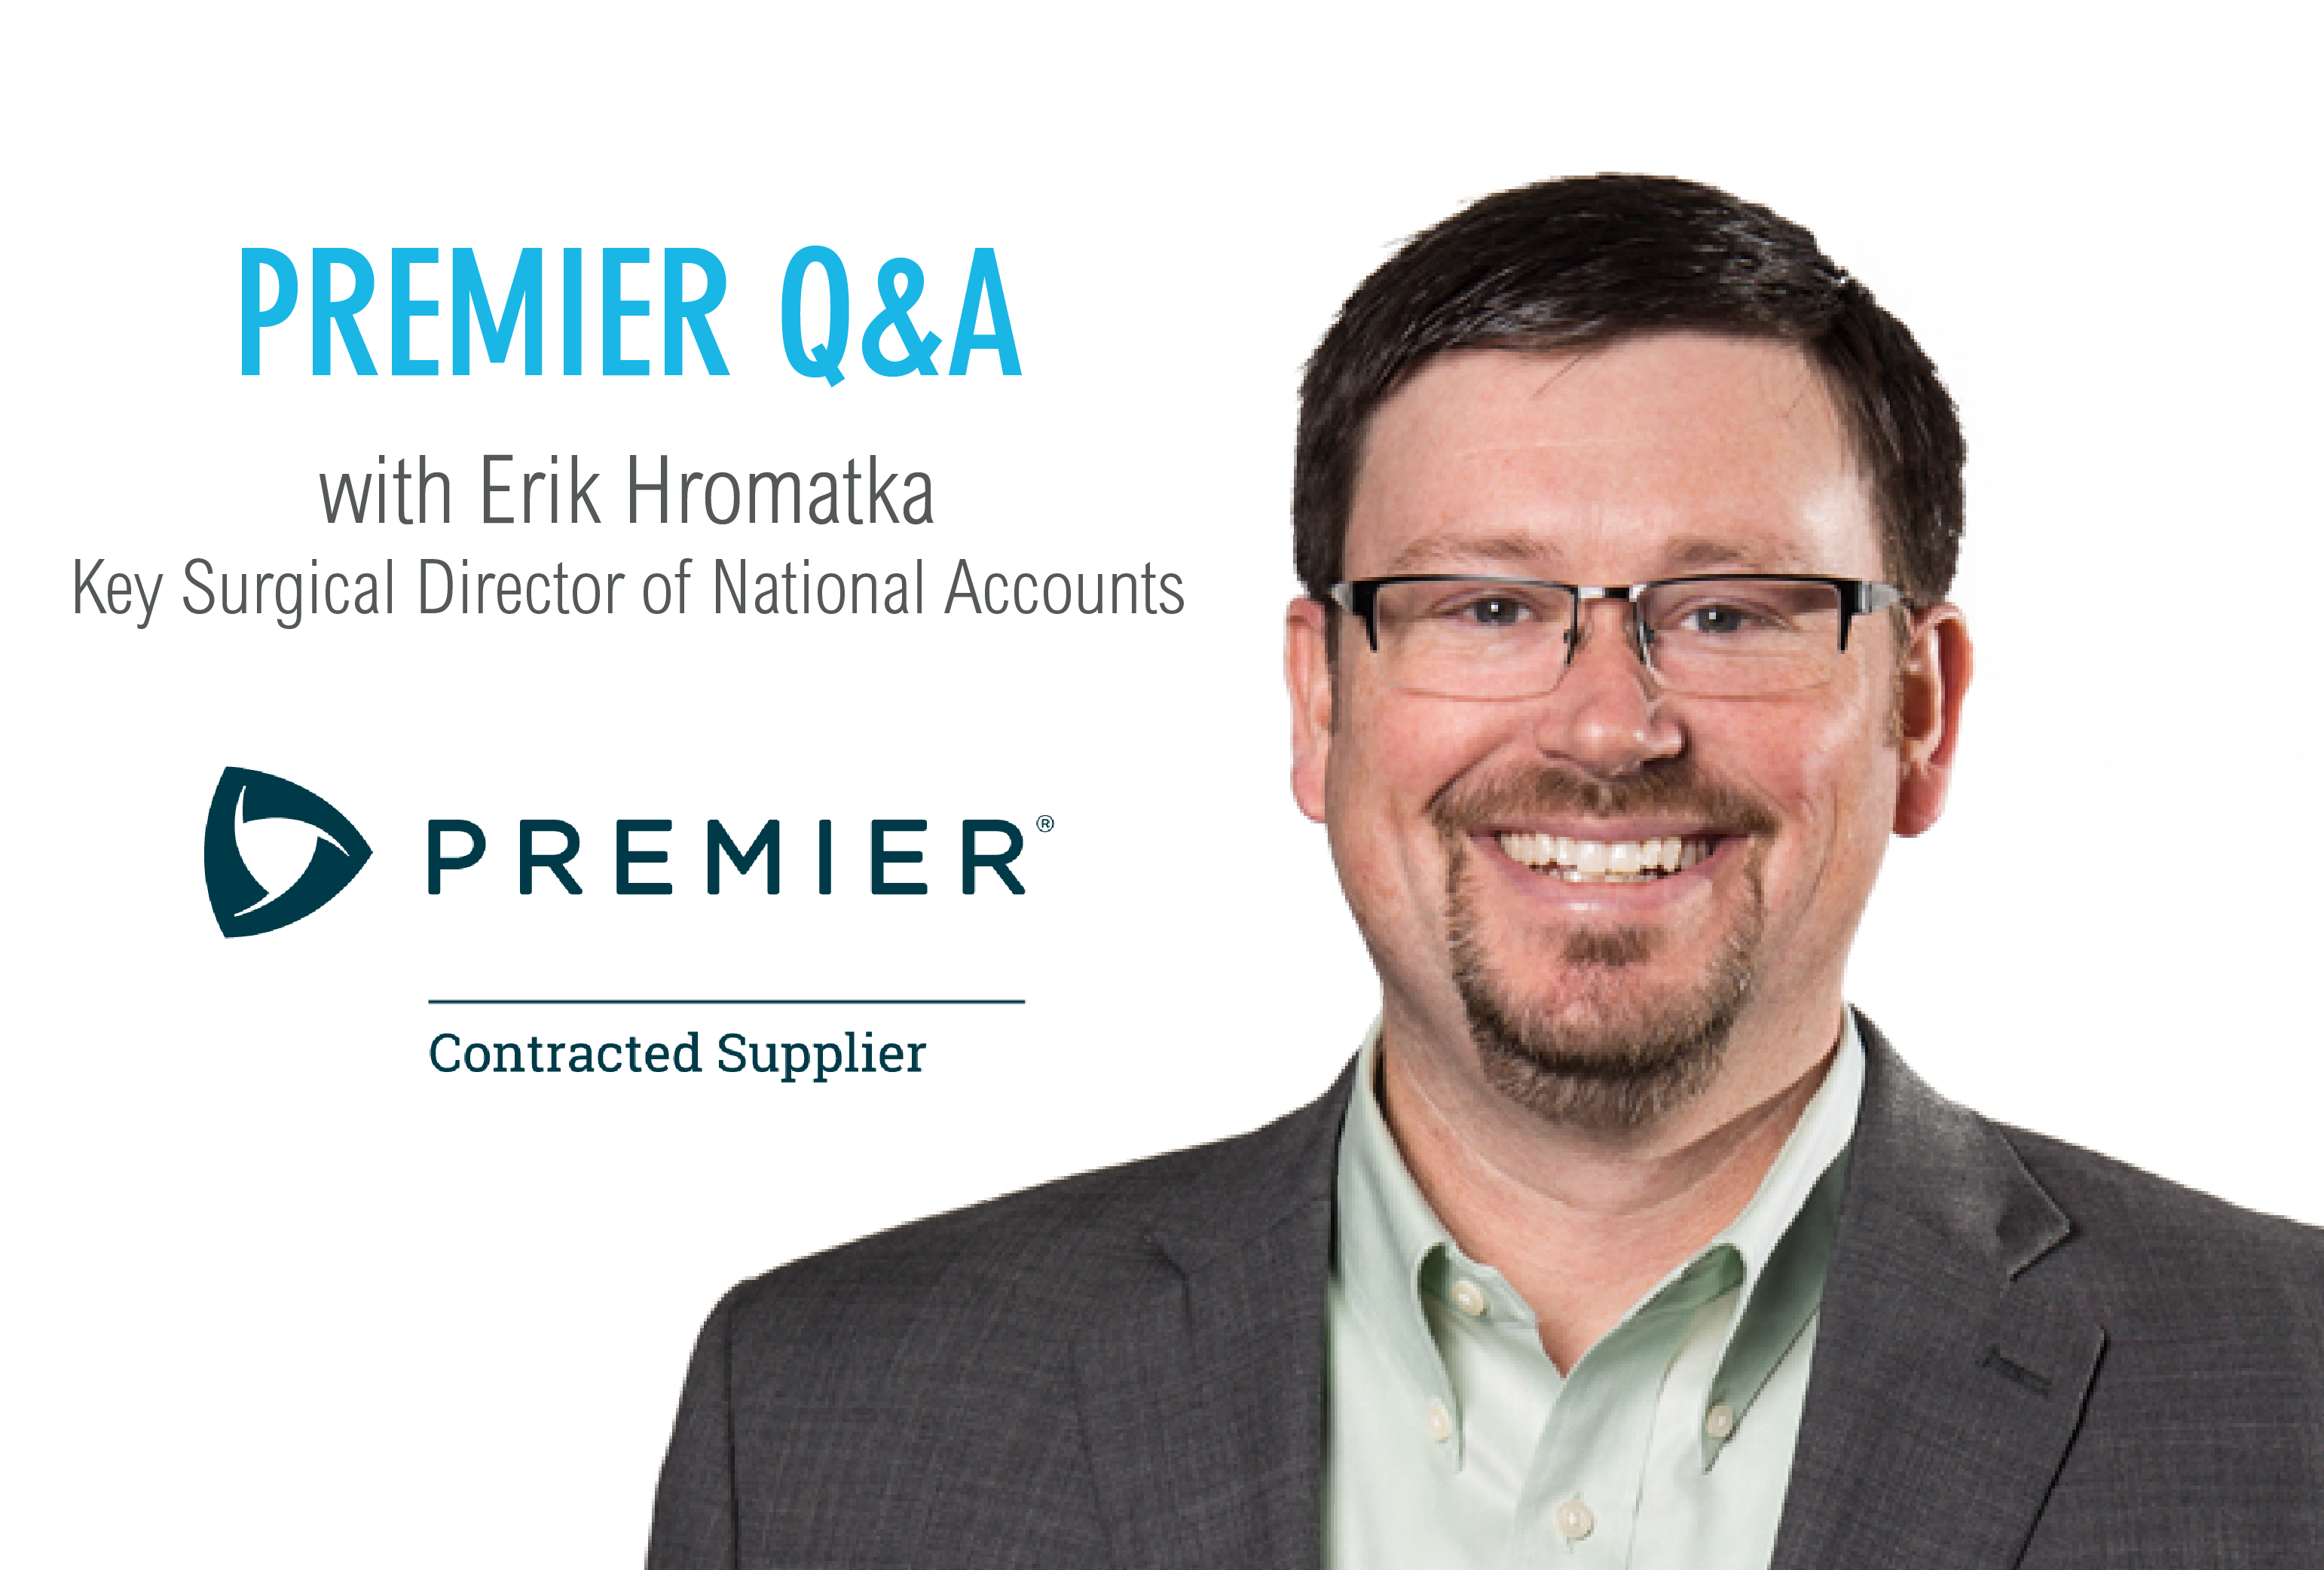 Premier Q&A with Erik Hromatka, Director of National Accounts